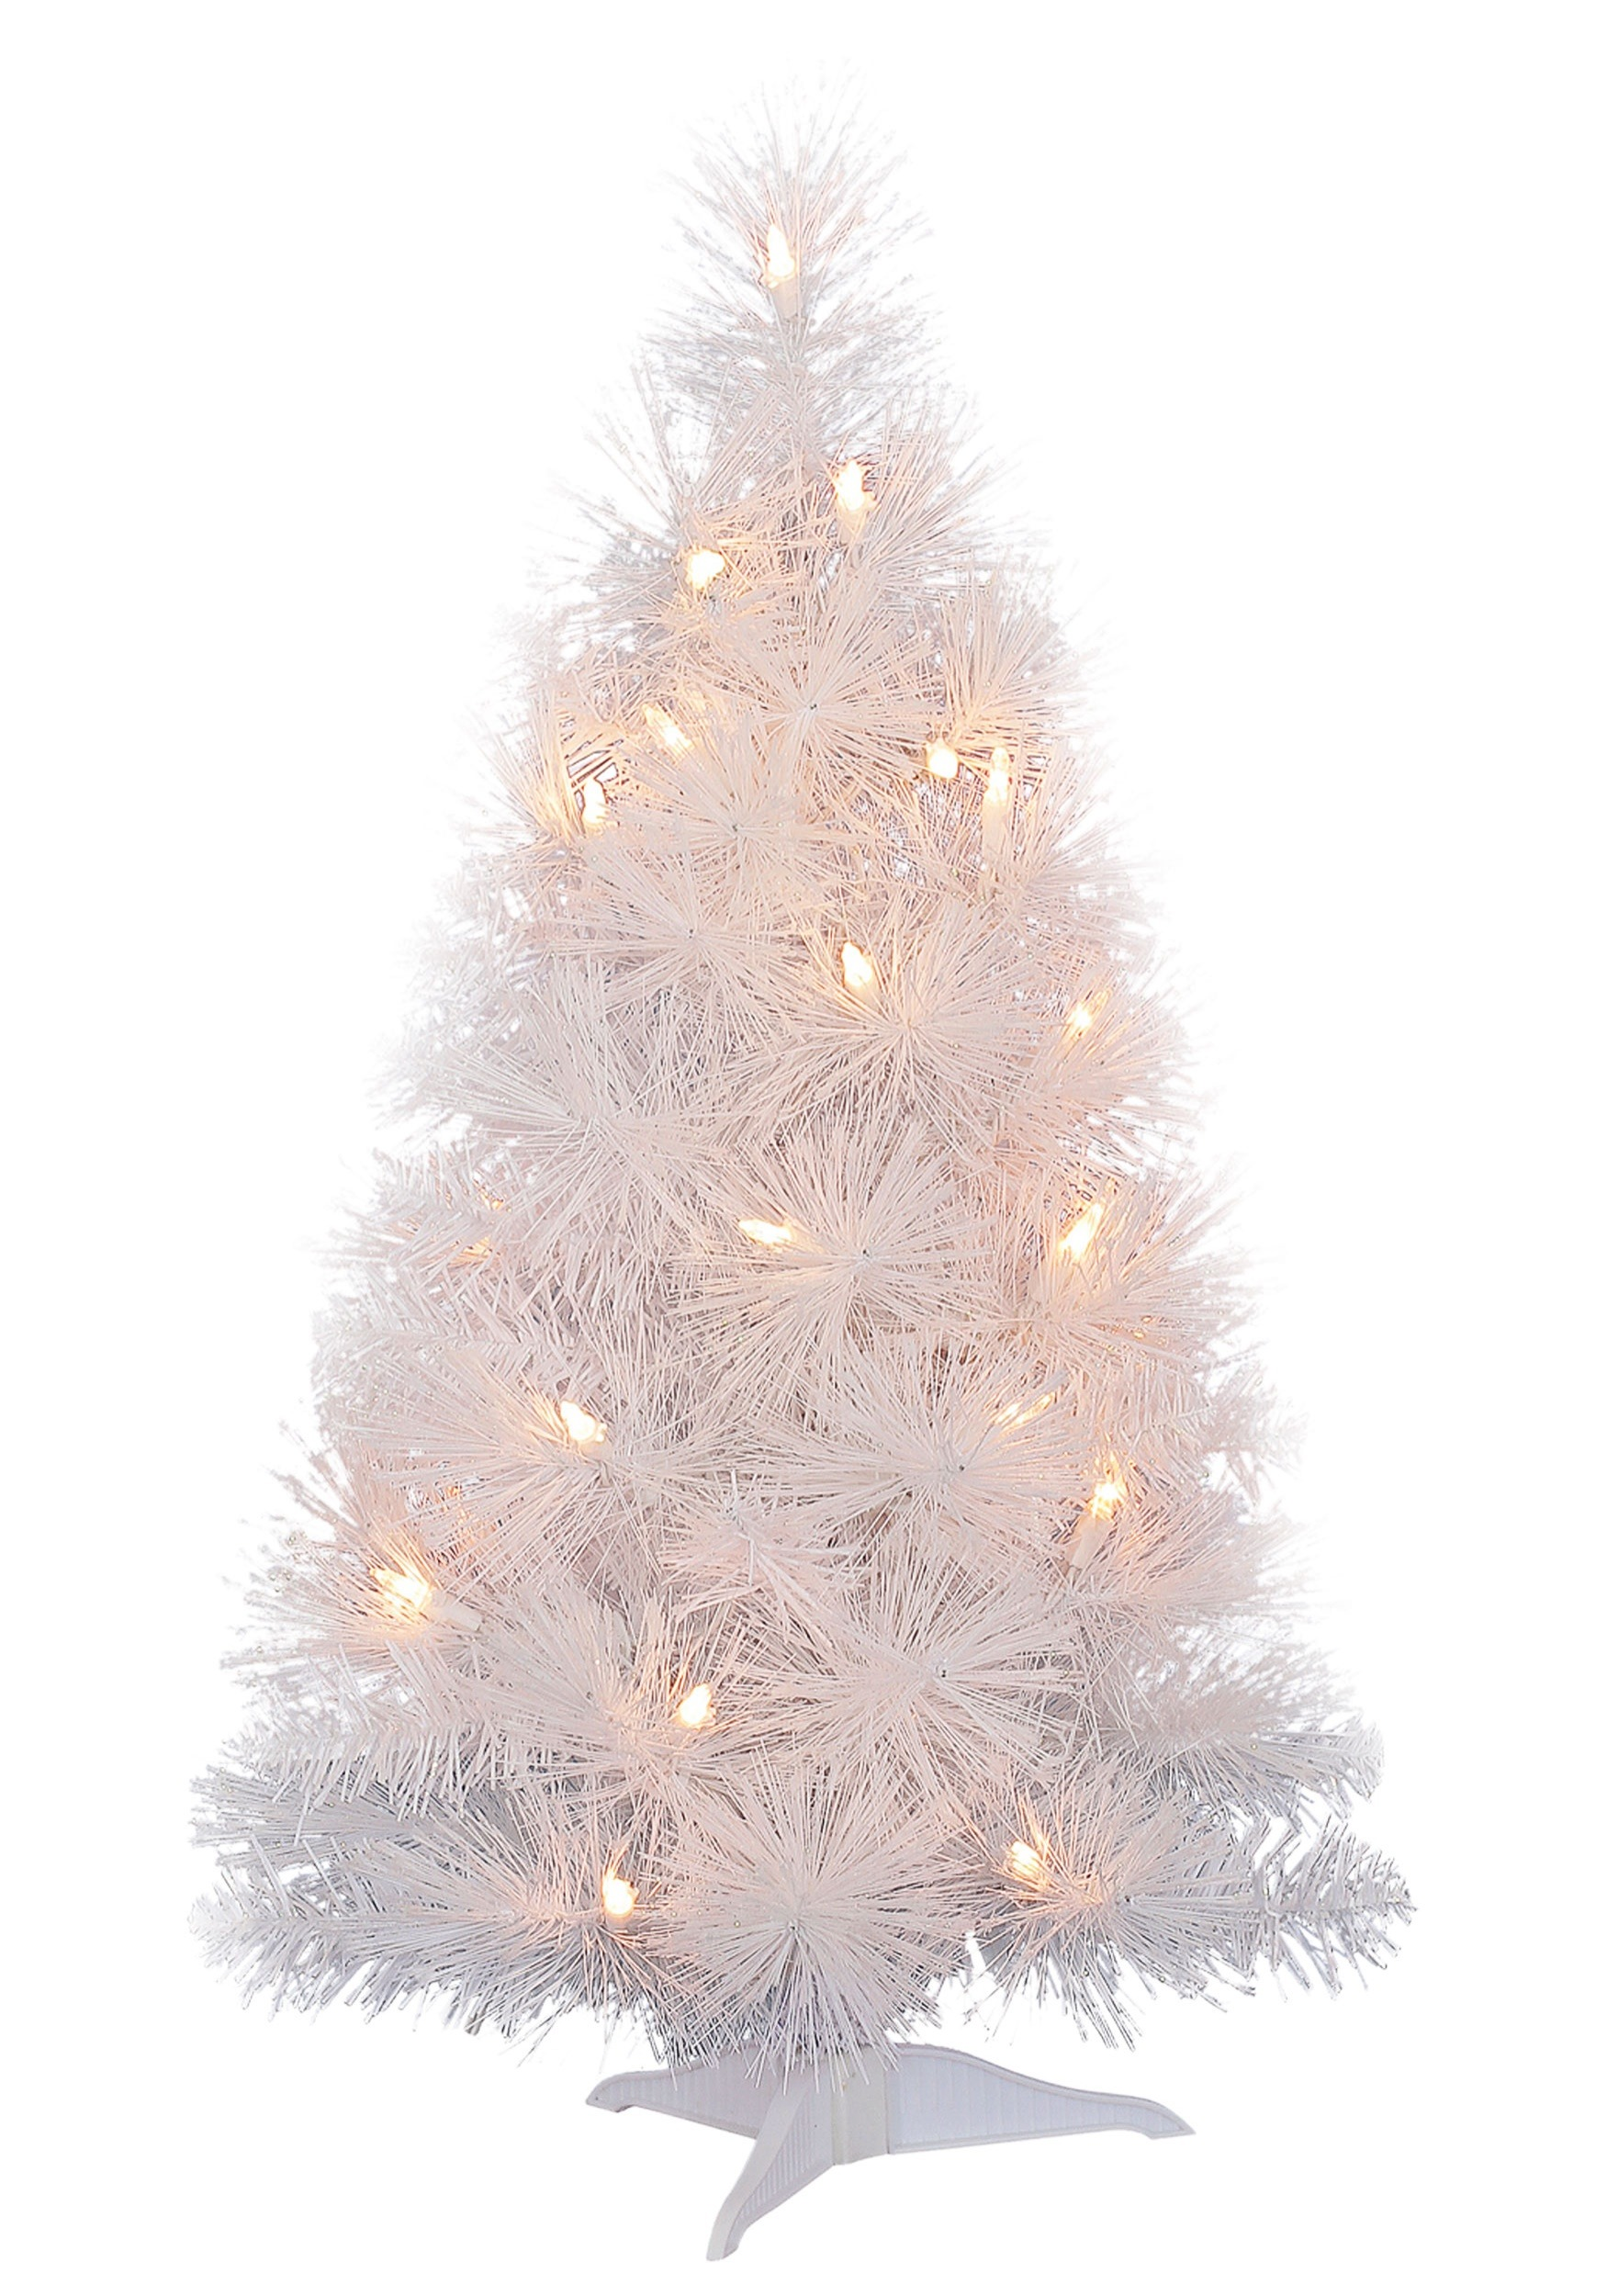 White Christmas 24 Quot Iridescent Tree With Lights